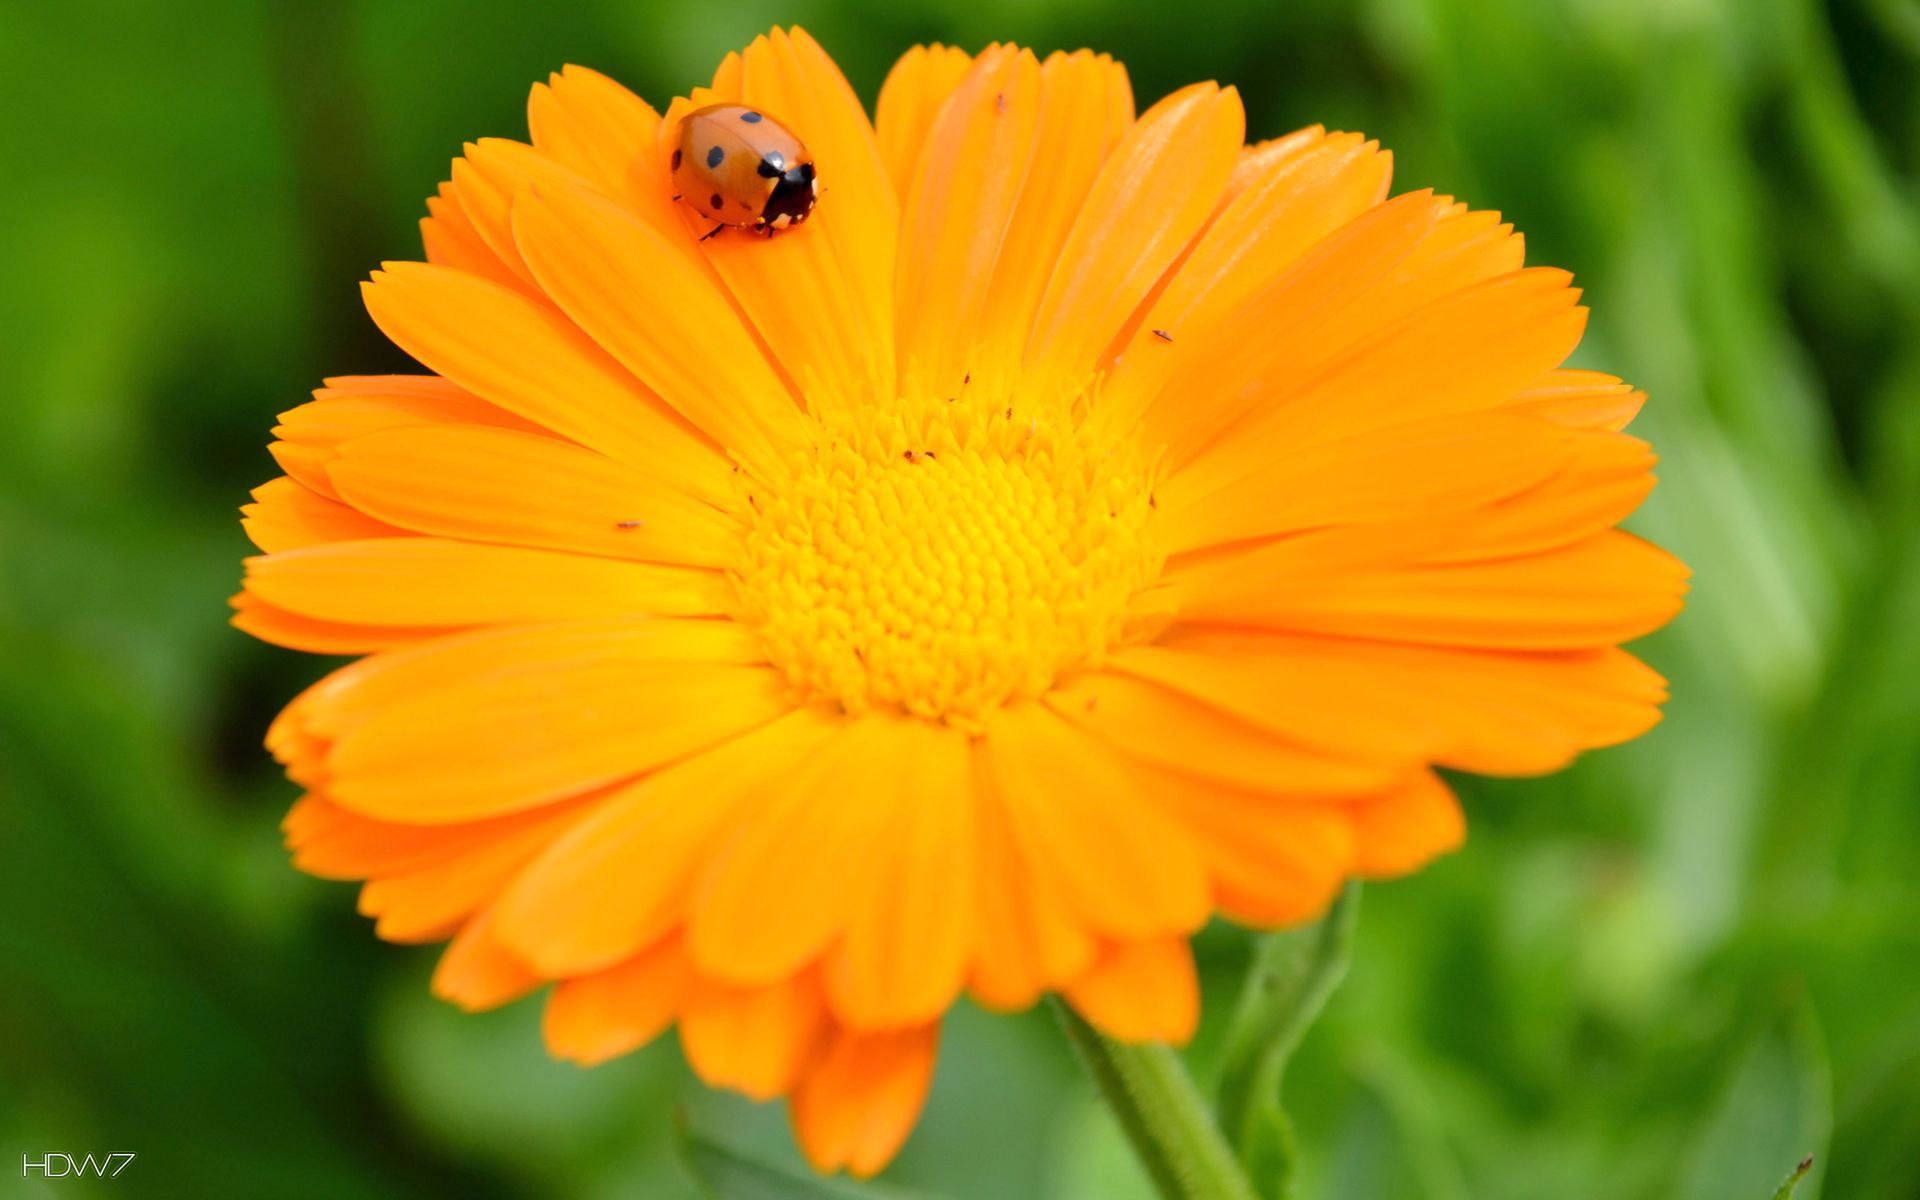 ladybug on orange flower wallpaper